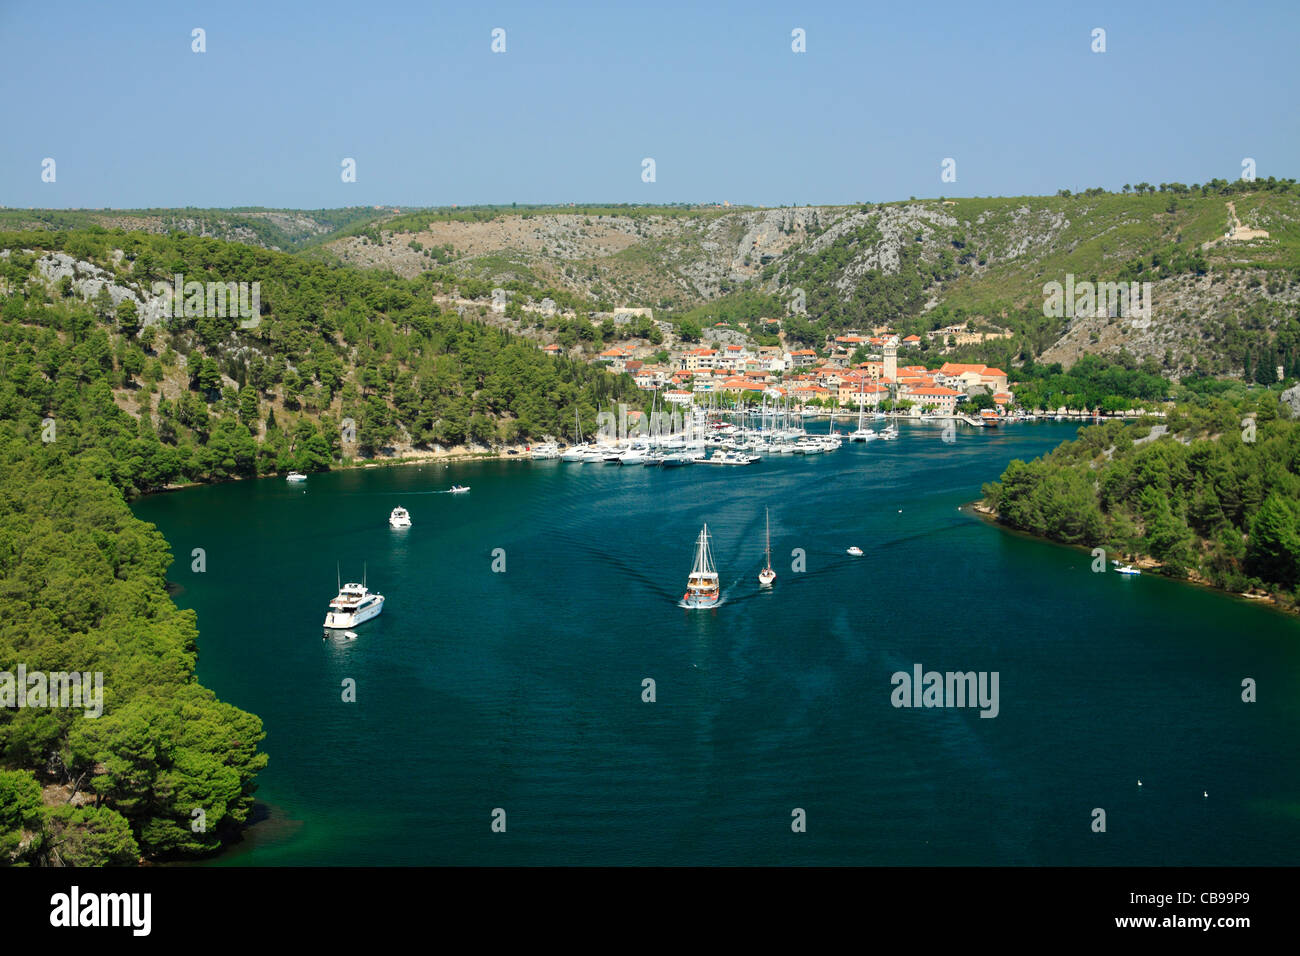 Krka river and Skradin, Croatia Stock Photo